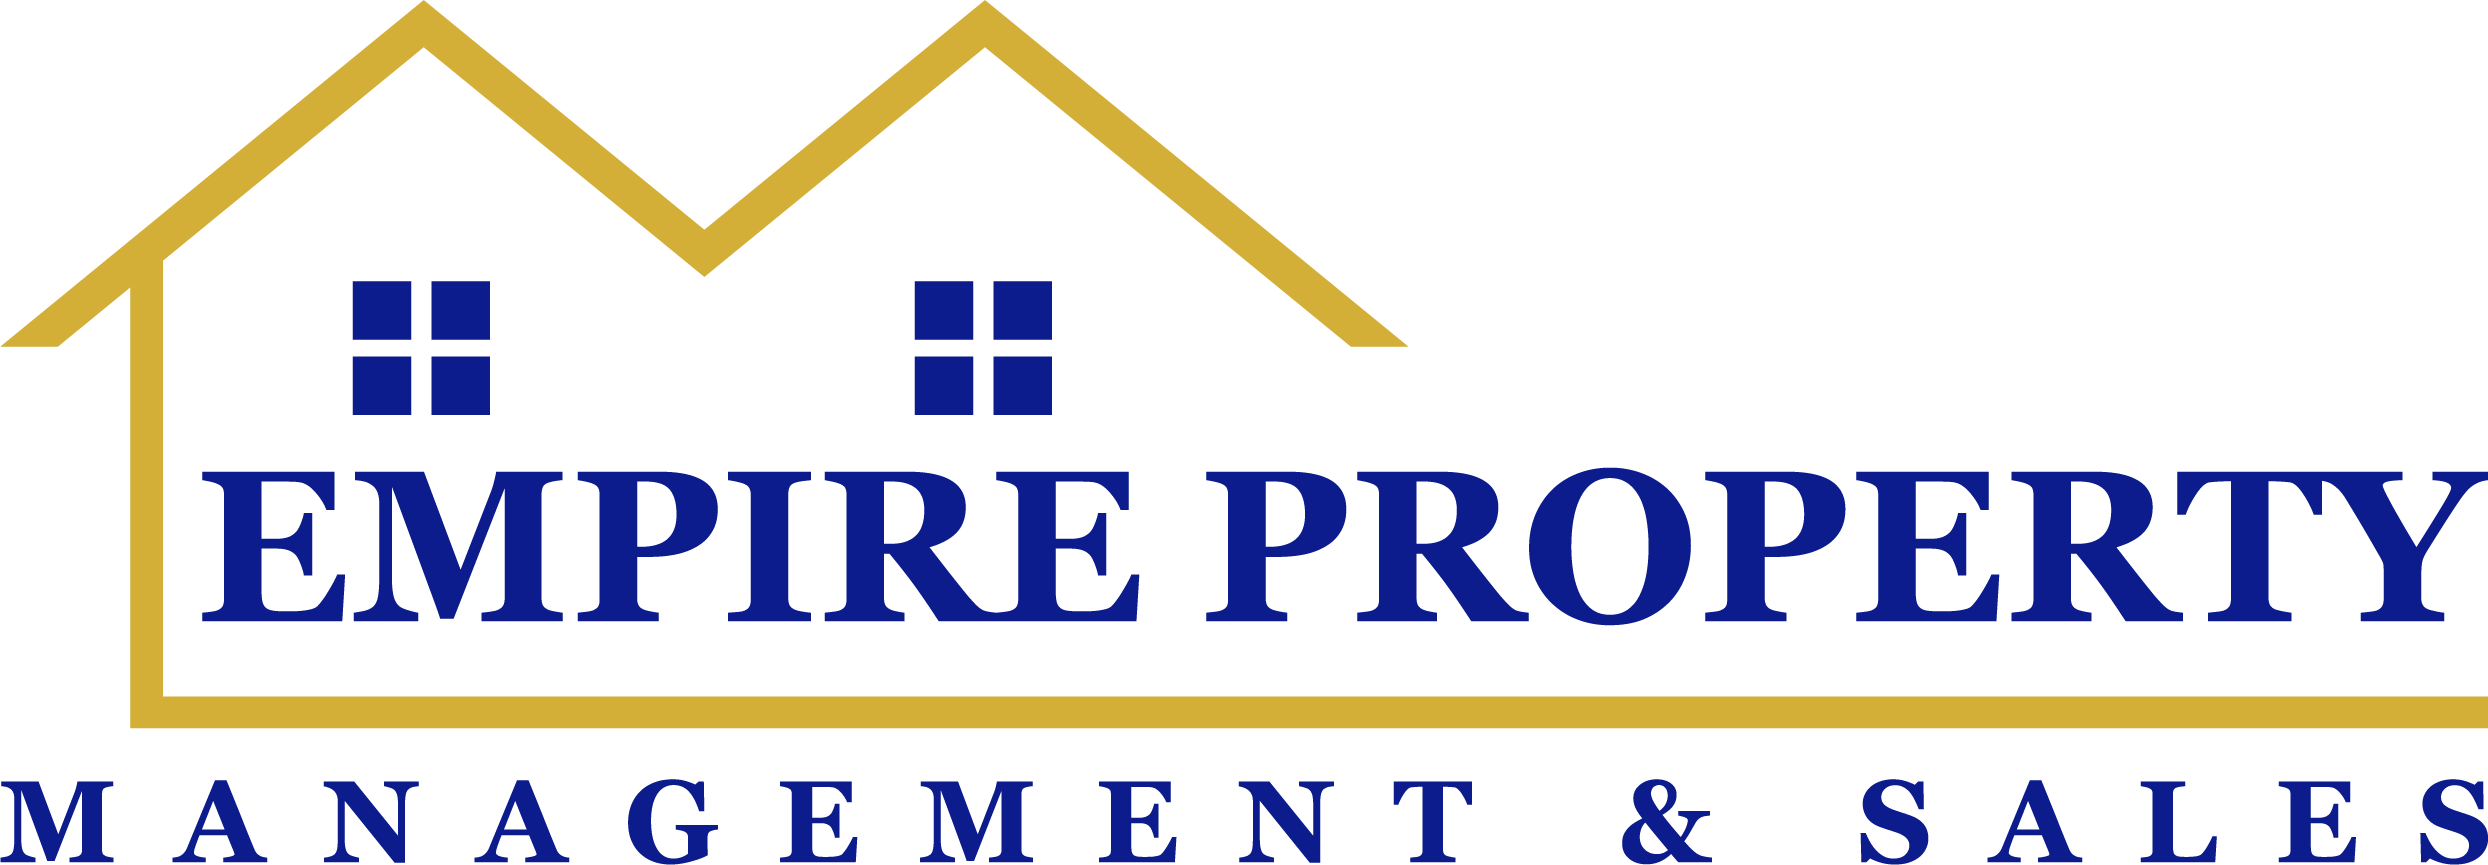 Empire Property Management & Sales - logo